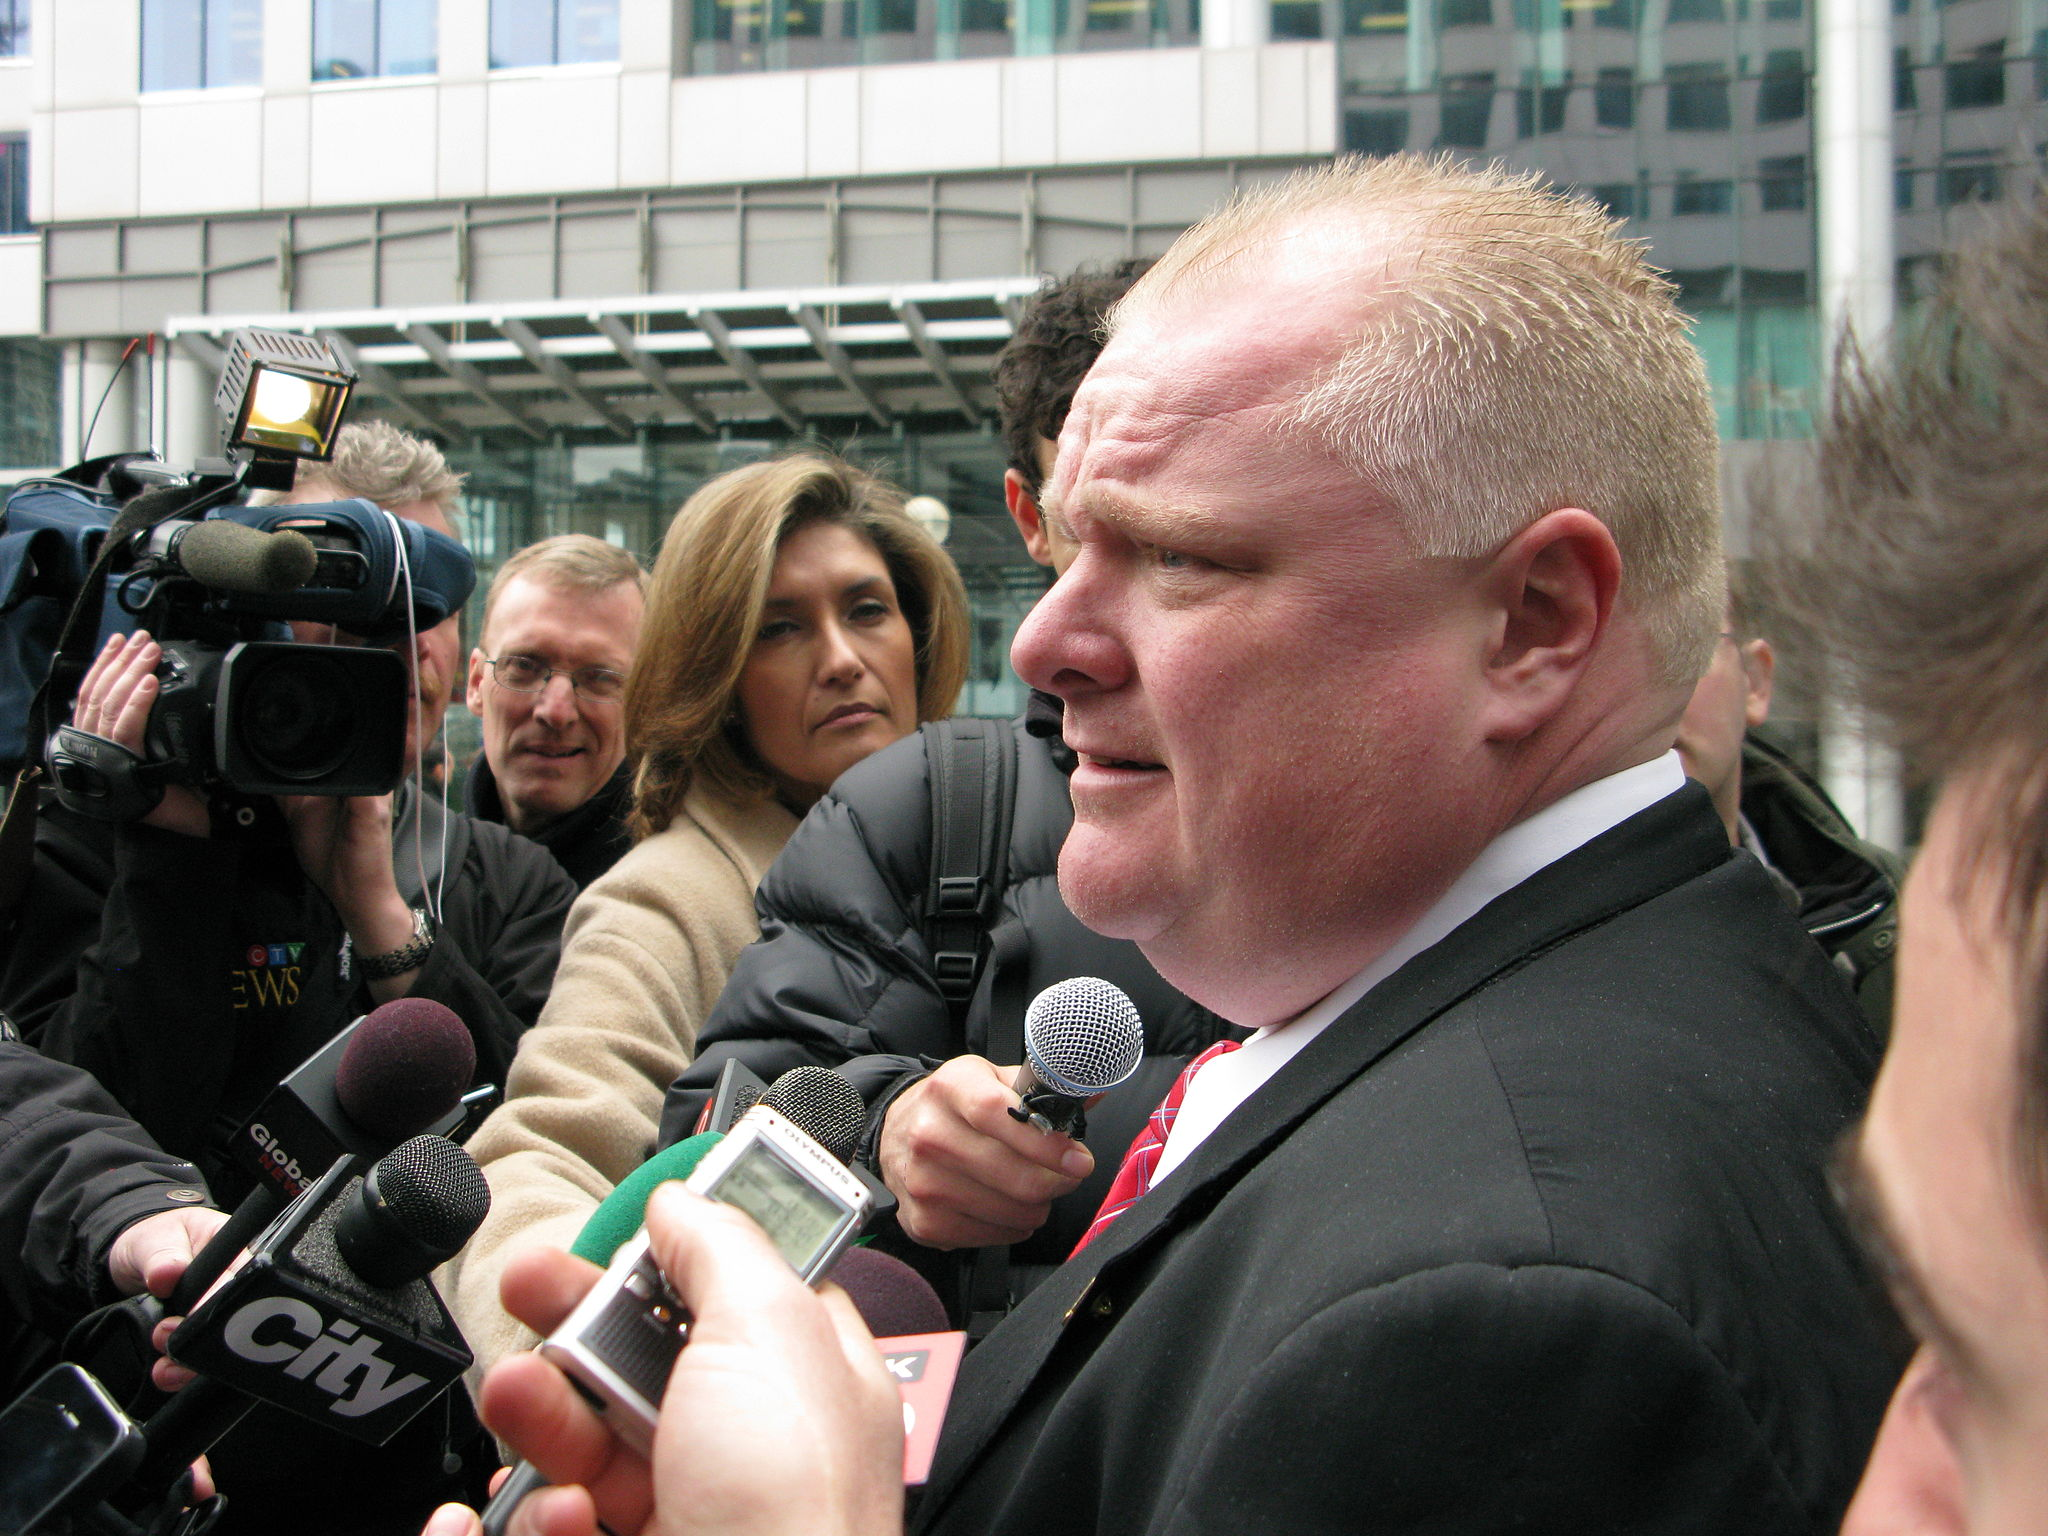 Rob Ford Meets the Press  © 2011 West Annex News, CC-BY-SA-2.0